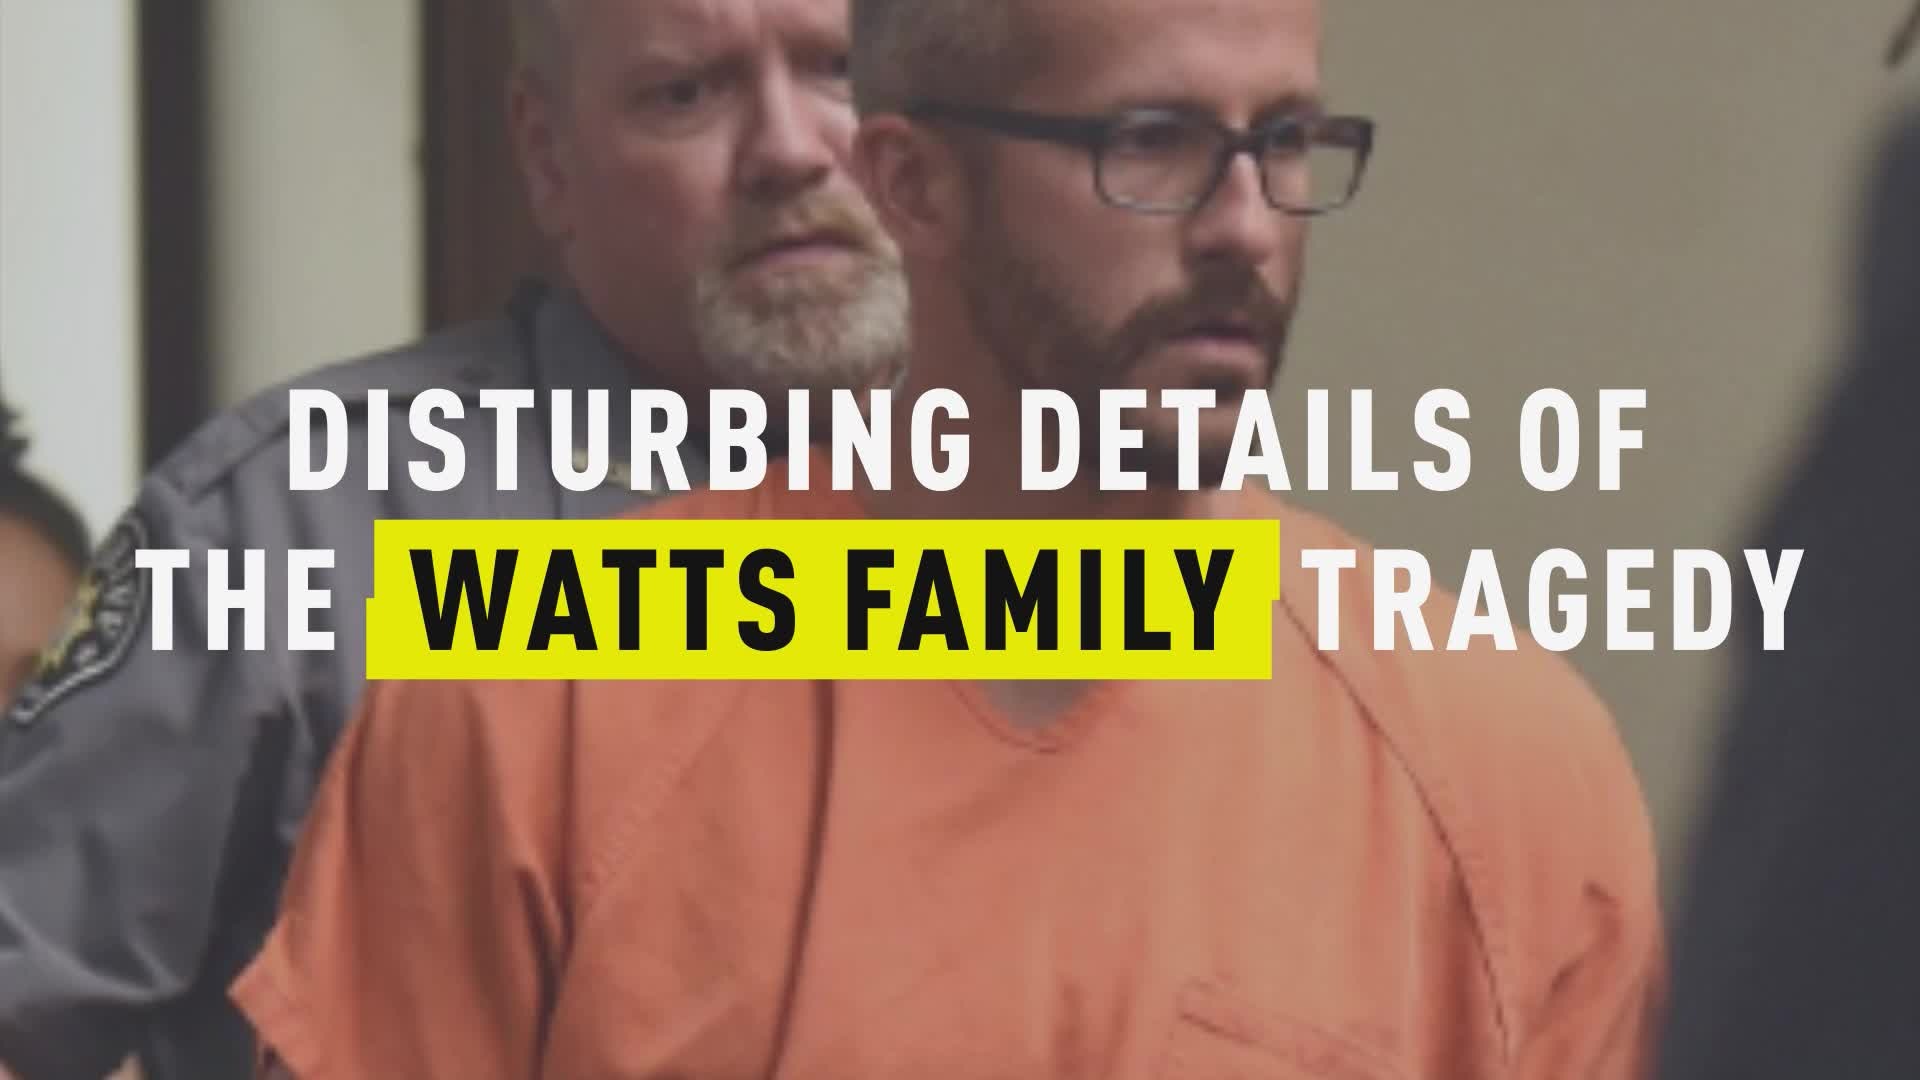 Amber Frey Nude Pictures disturbing details of the watts family tragedy